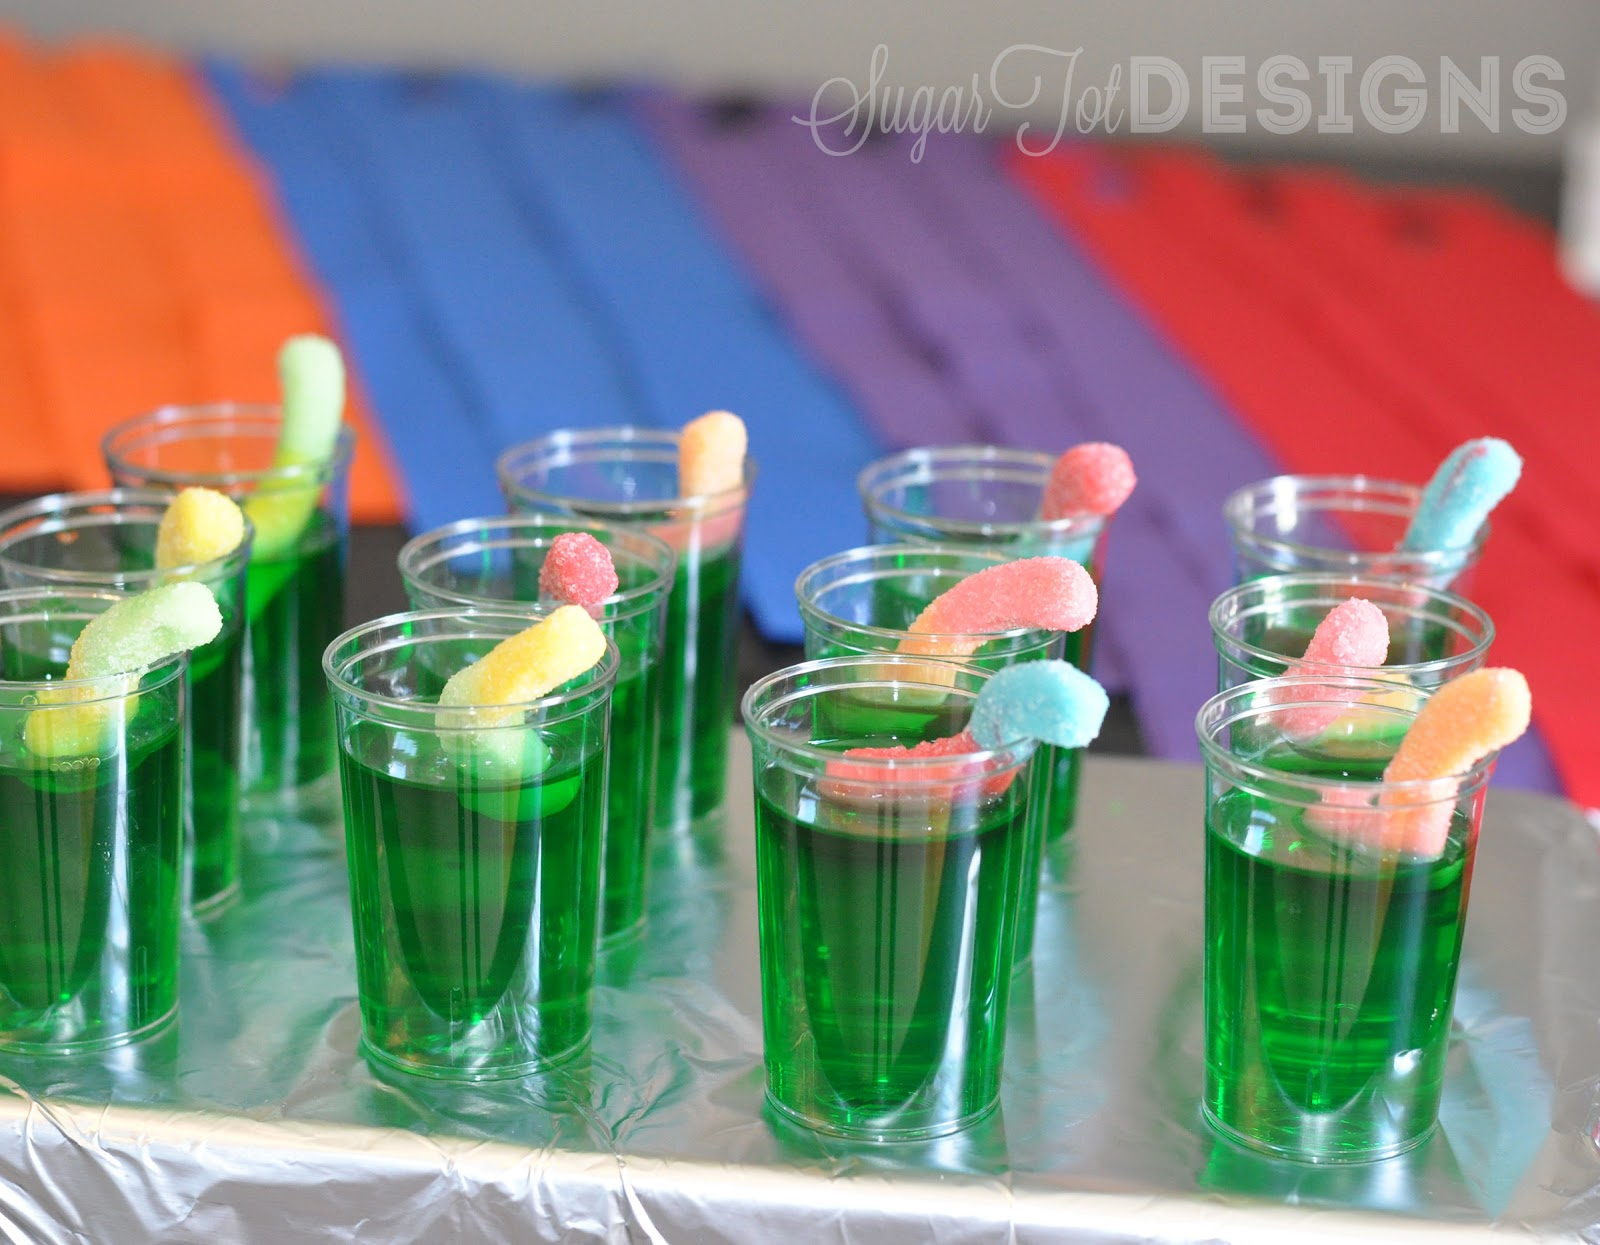 Sugartotdesigns Teenage Mutant Ninja Turtle Party